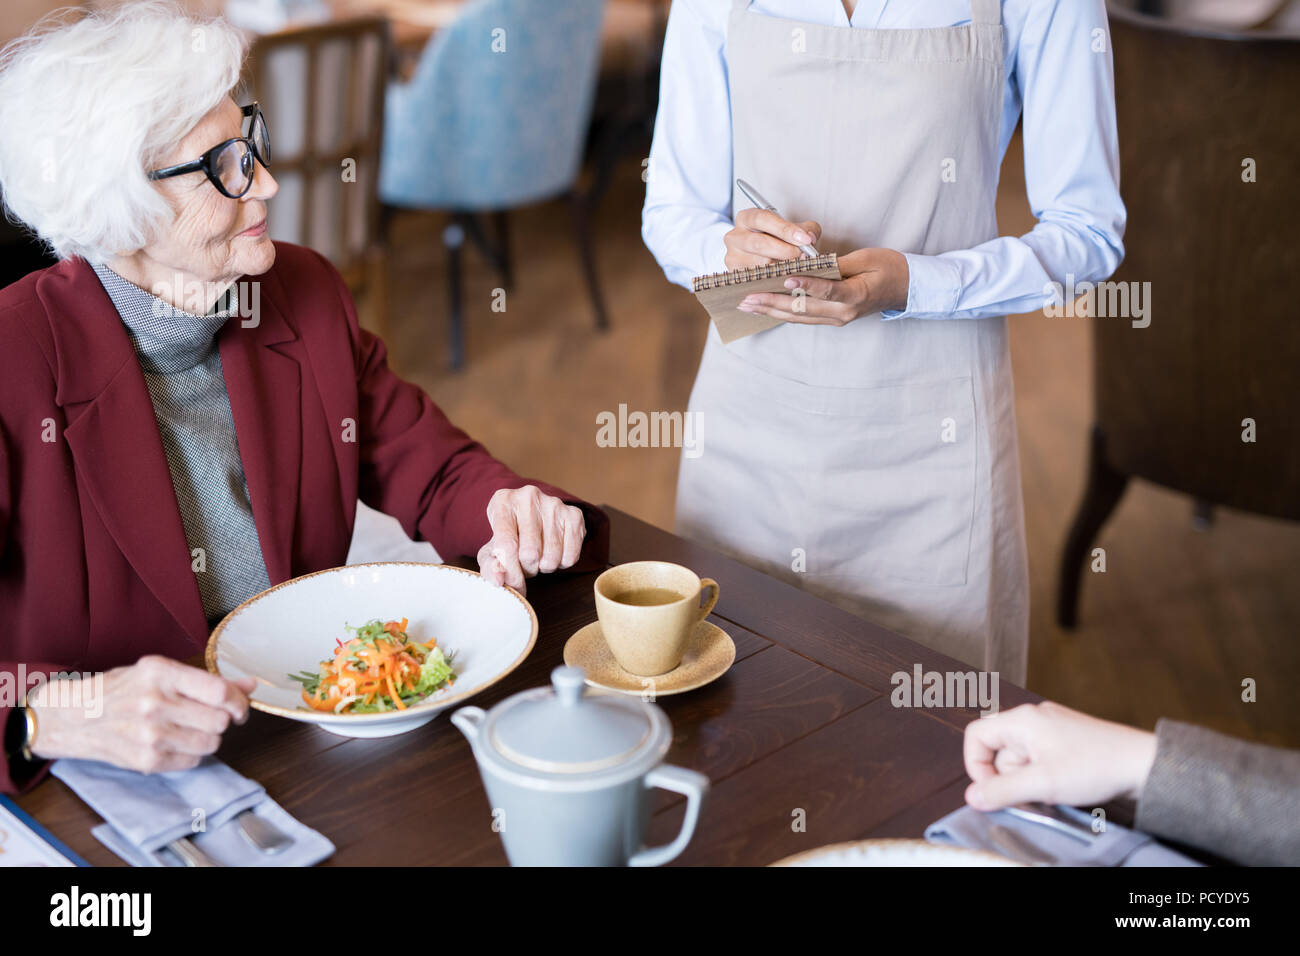 Senior woman at restaurant - Stock Image